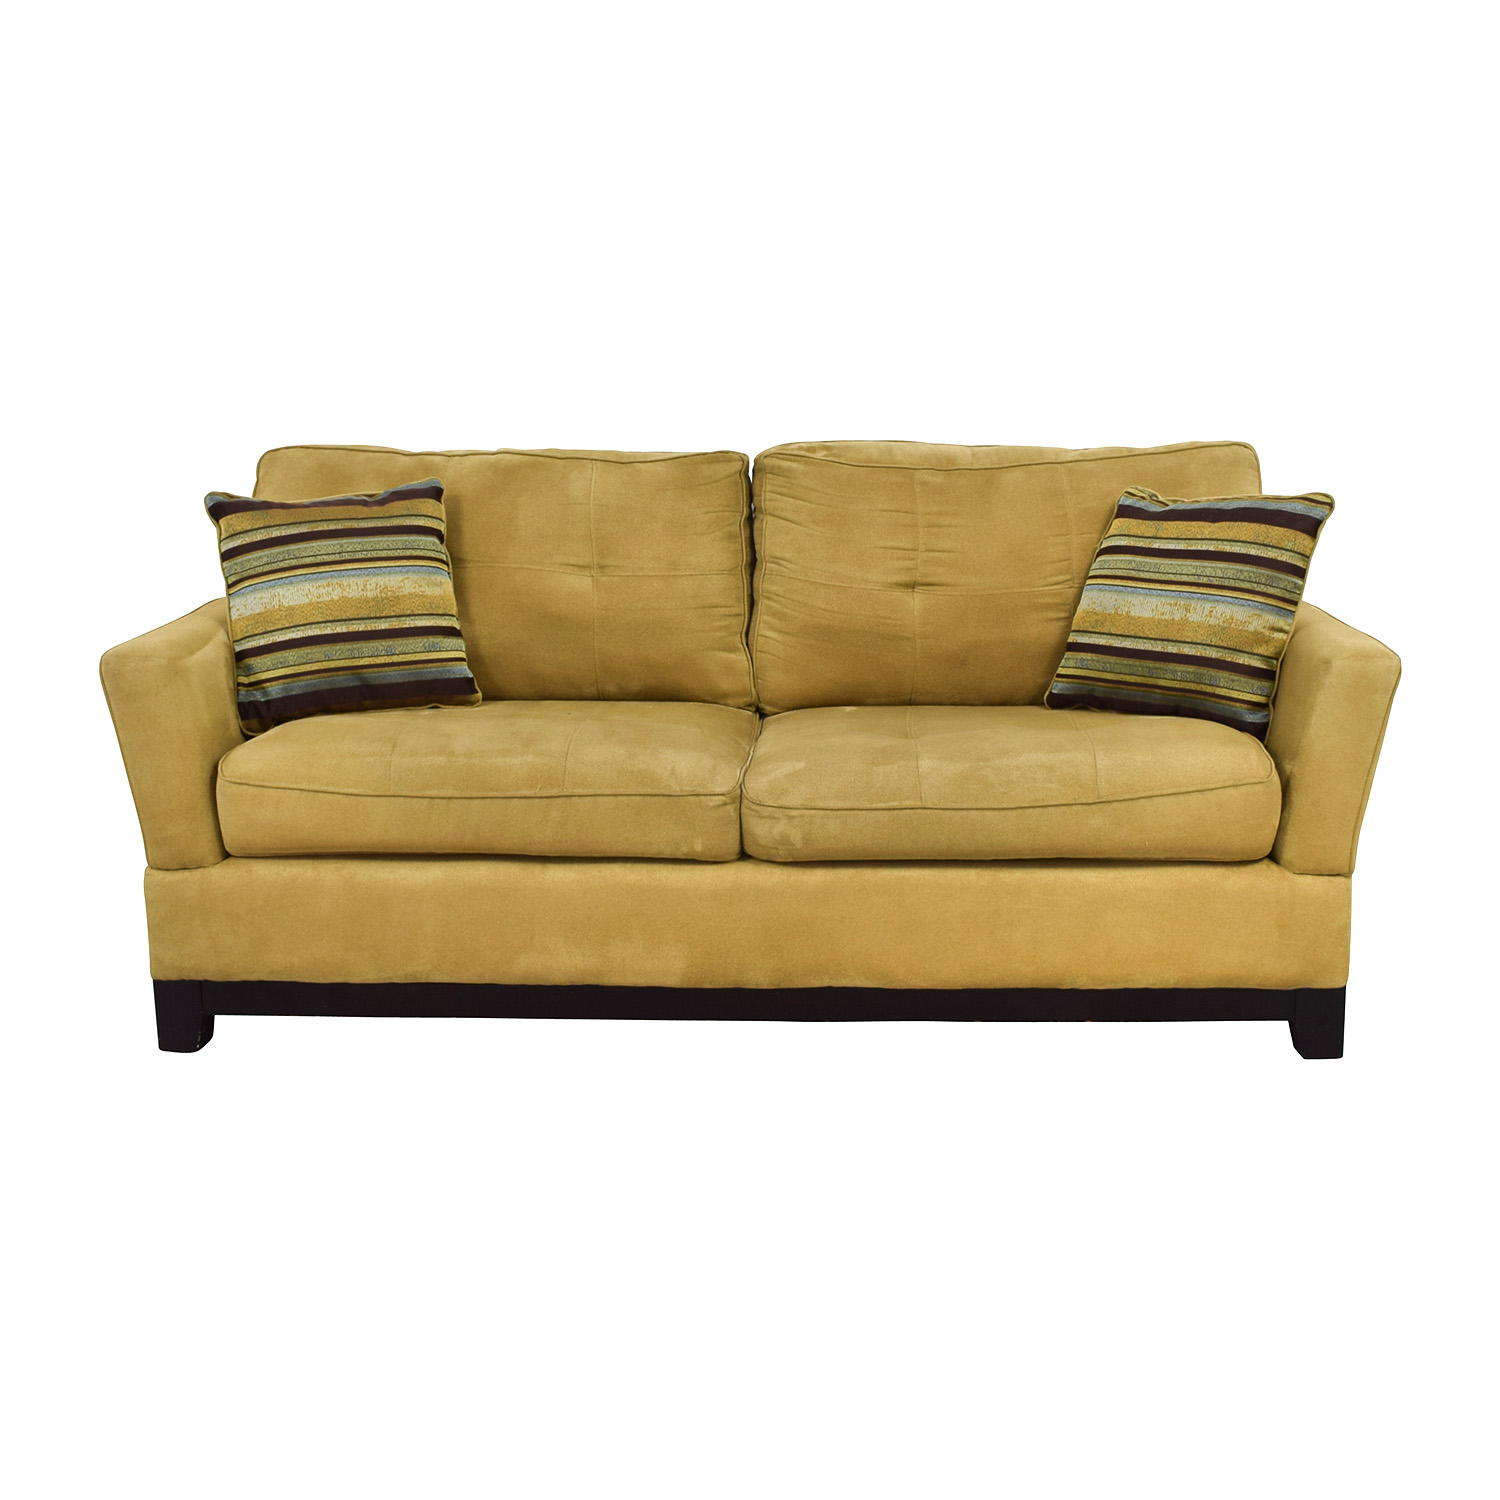 Sofa With Pillows Best Home Furnishings Emeline Sofa With